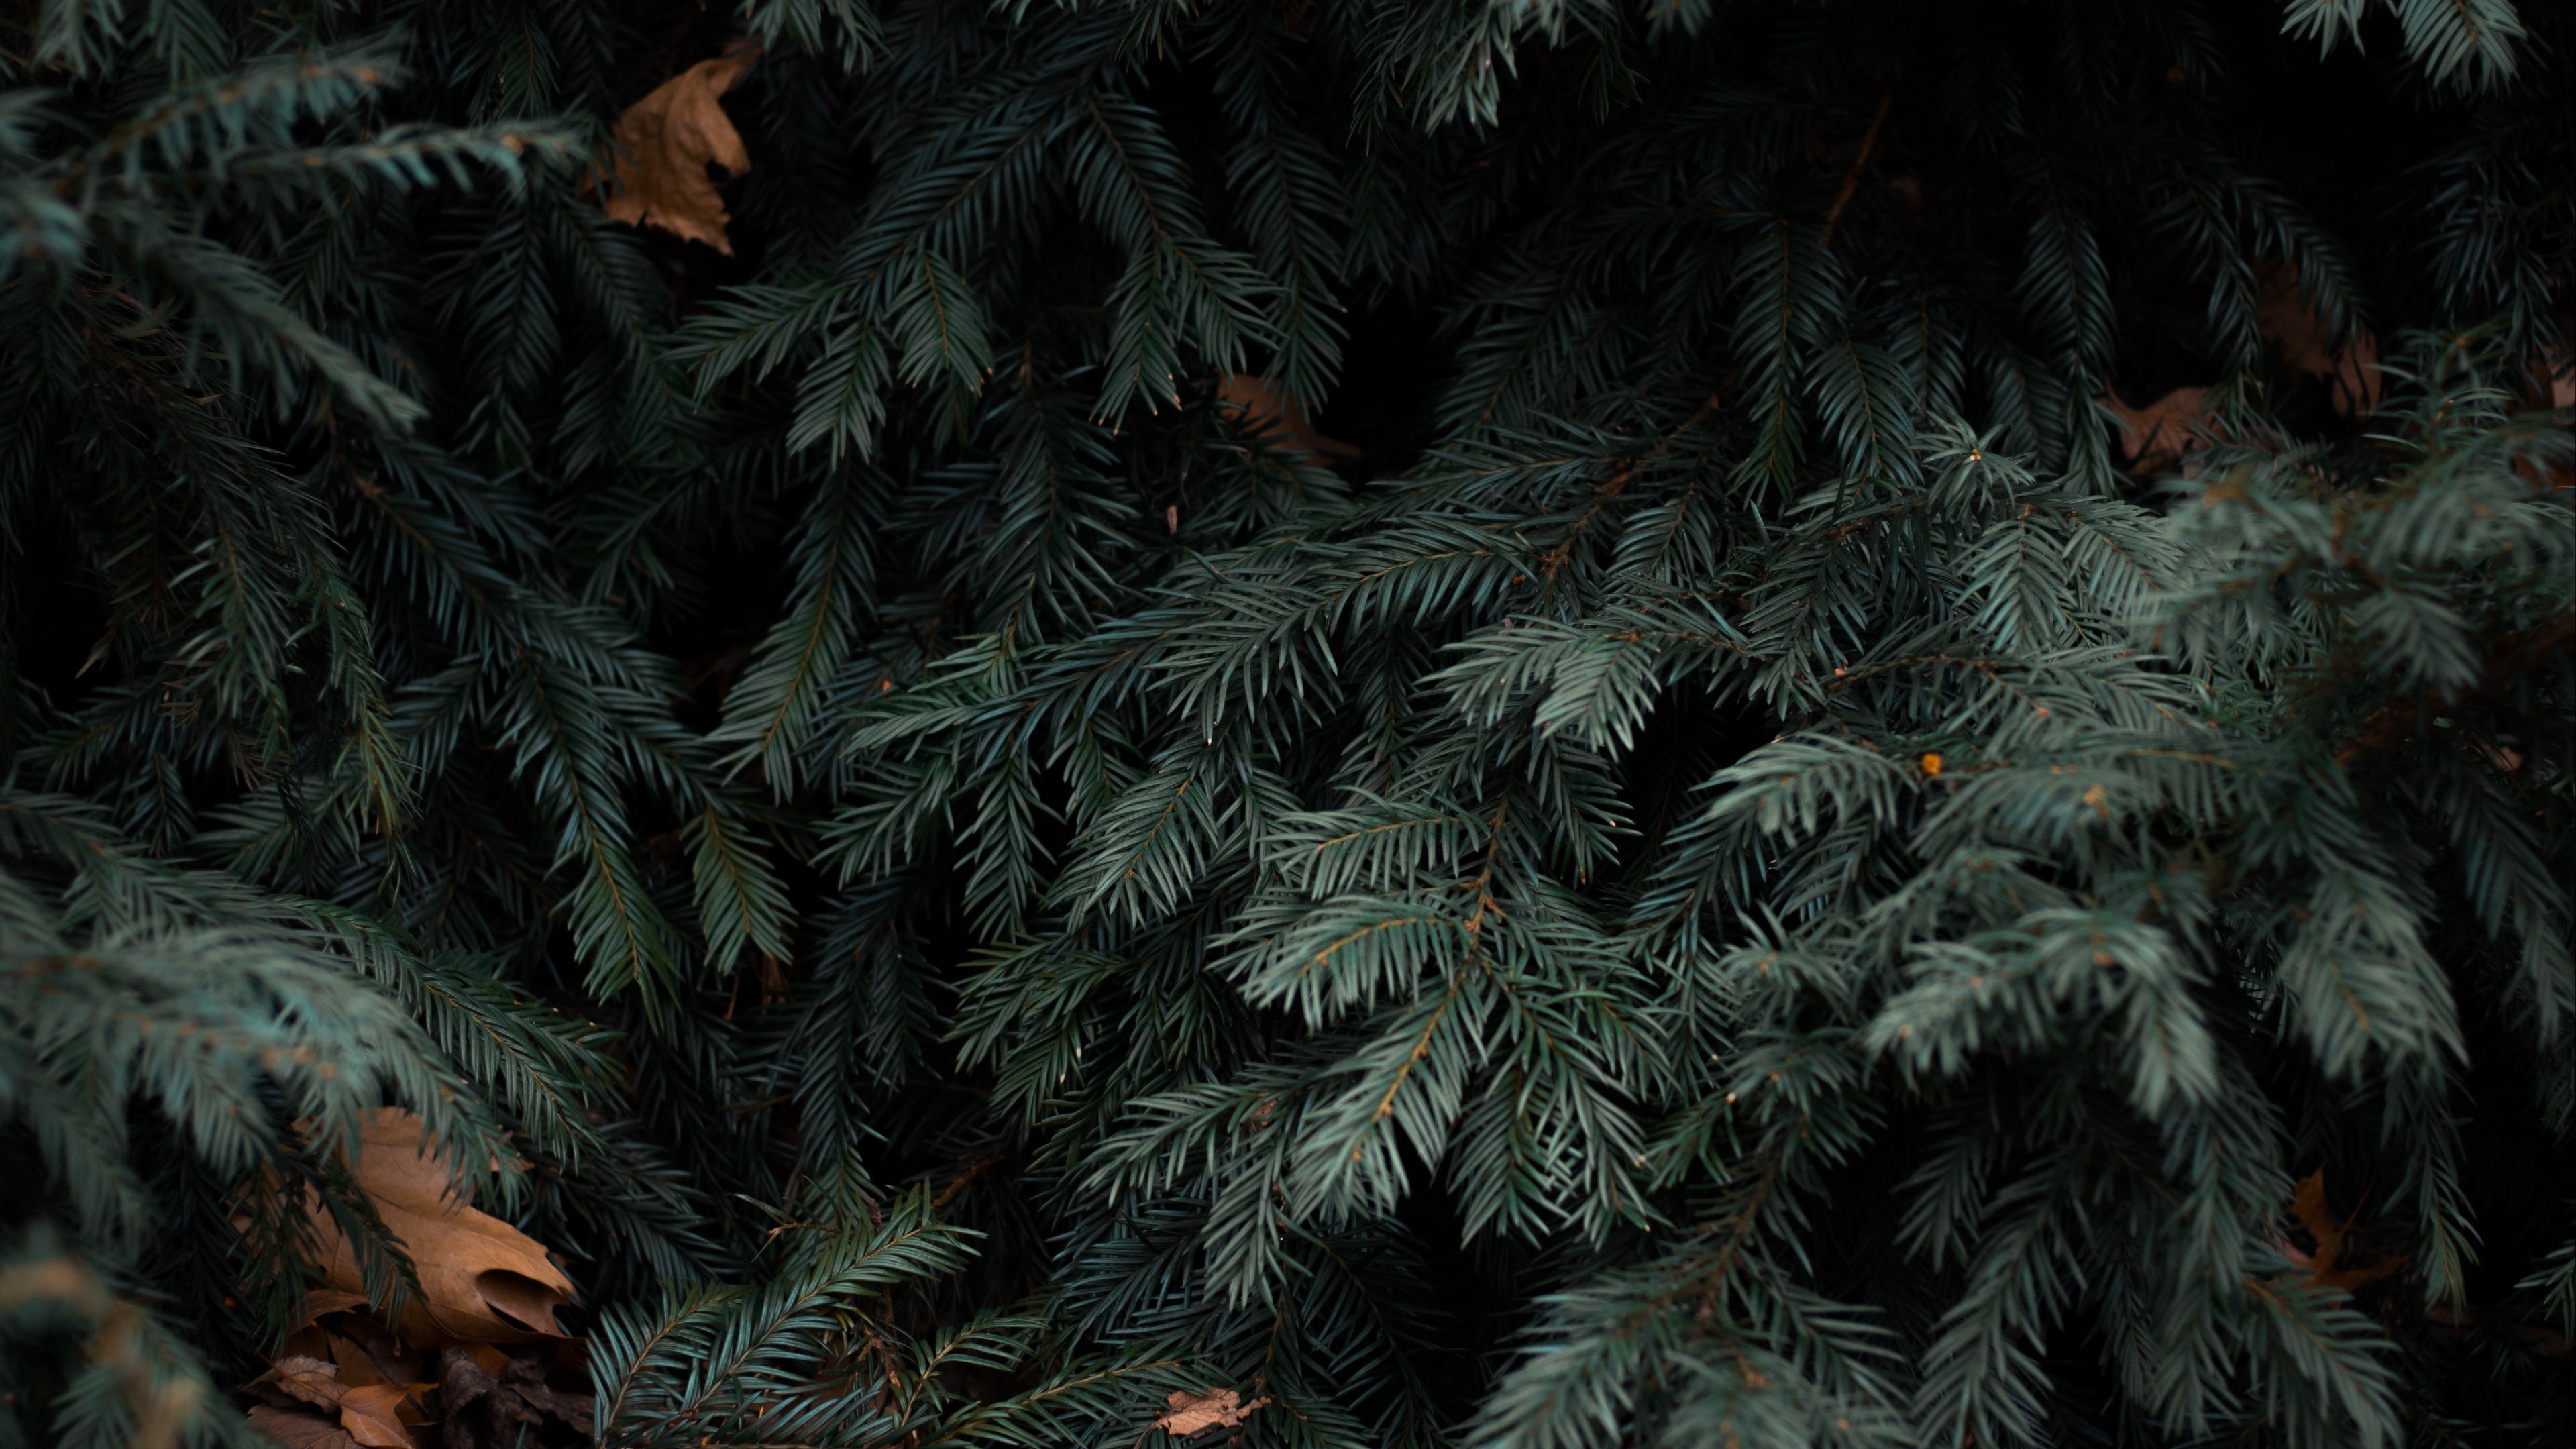 spruce branches needles green 4k 1541116169 - spruce, branches, needles, green 4k - spruce, needles, branches